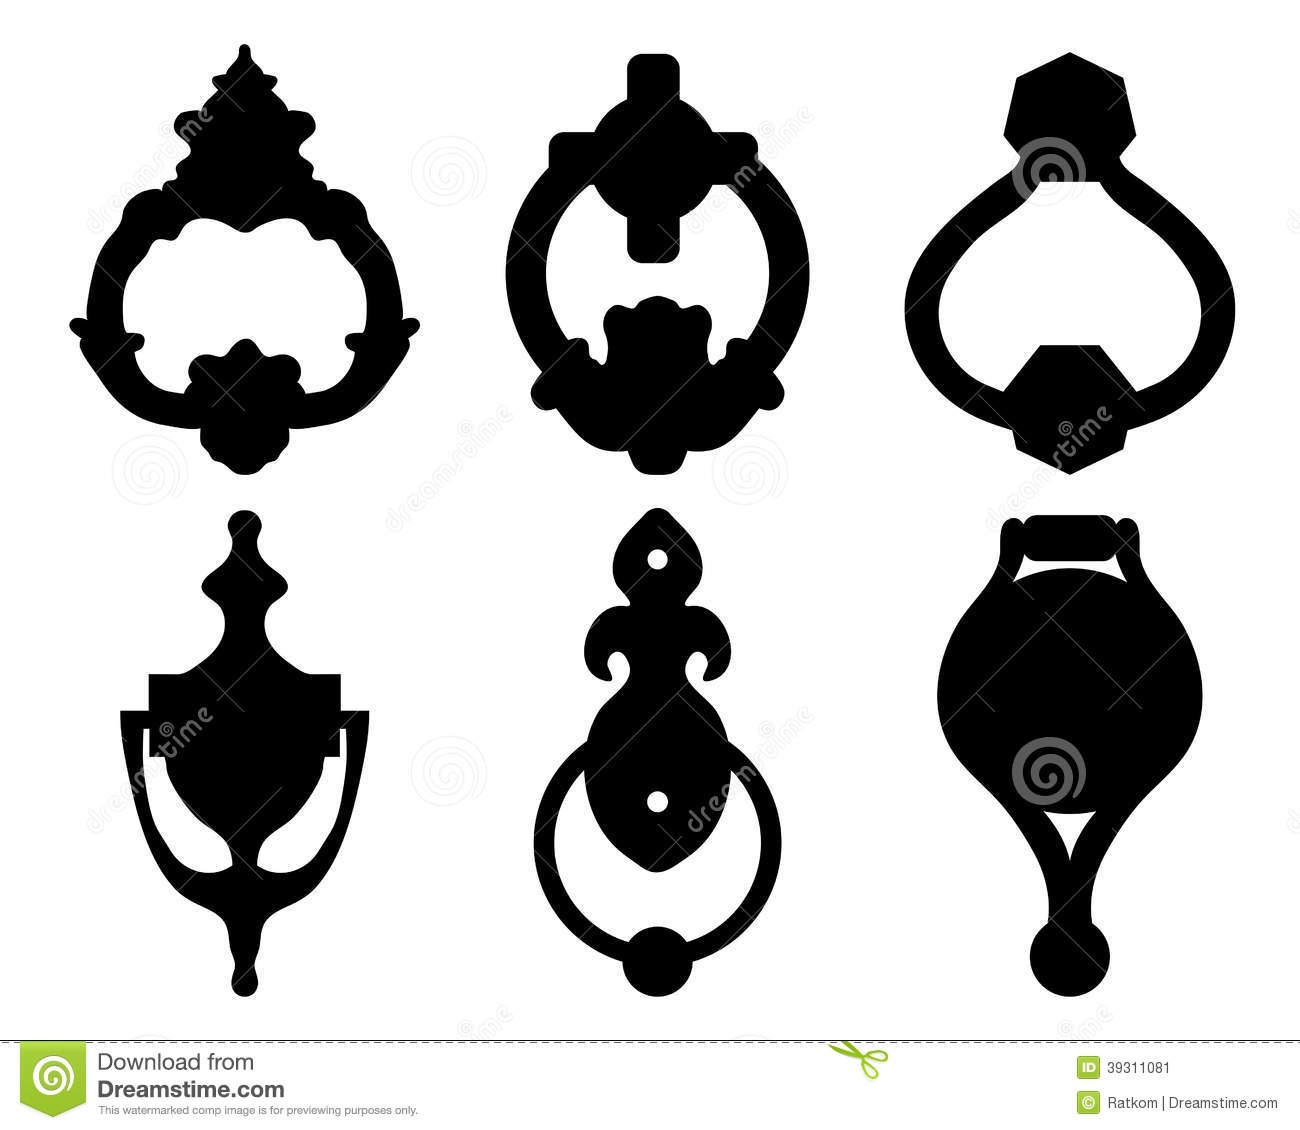 Clipart door knocker.